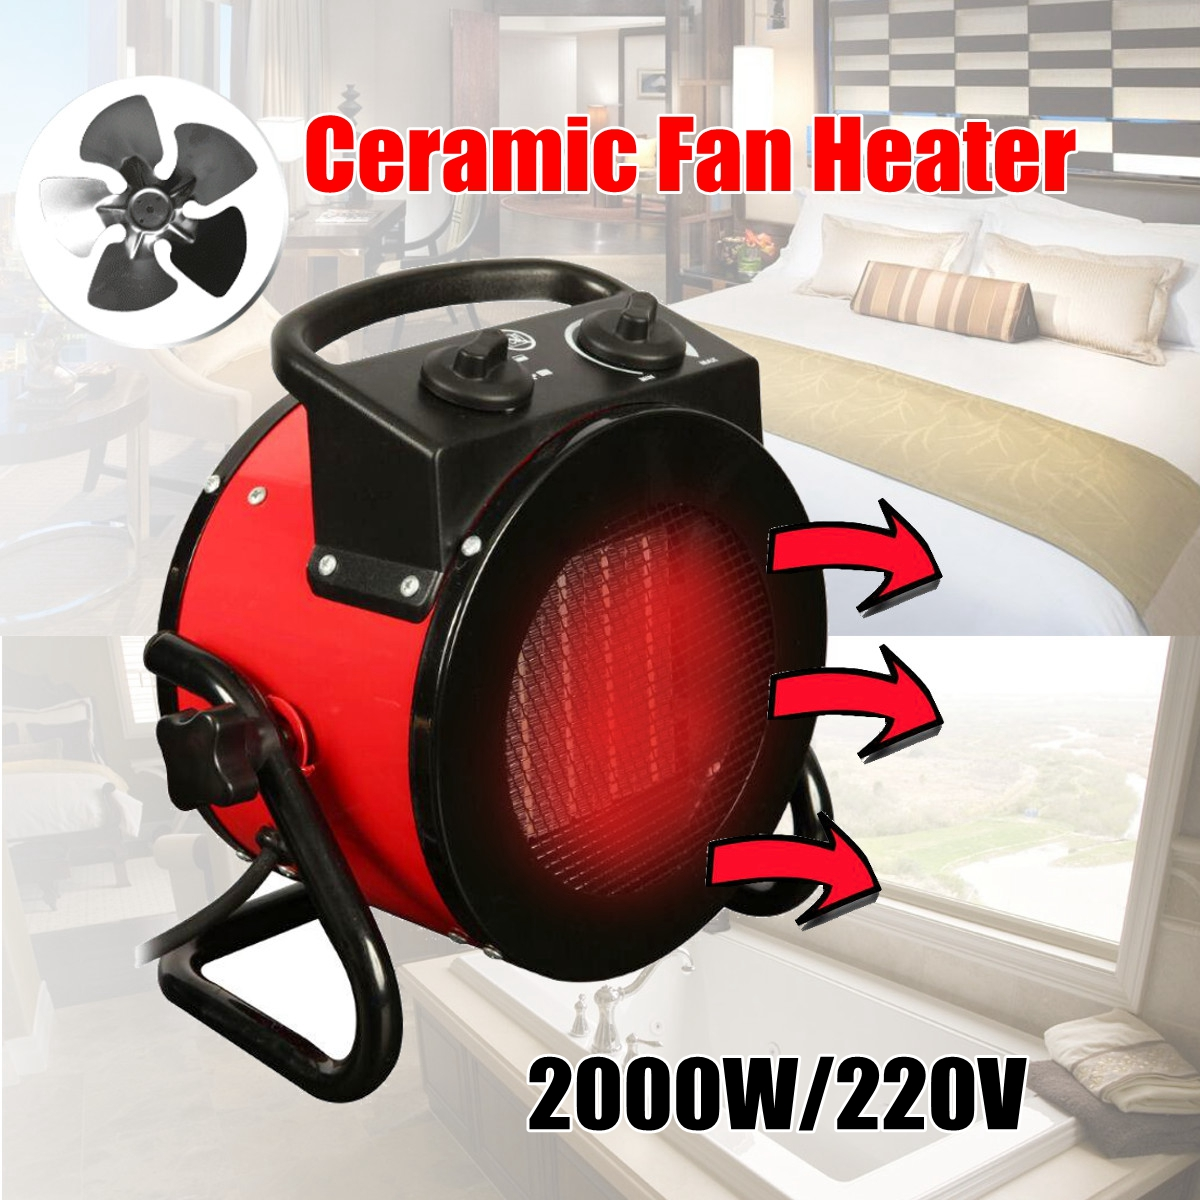 220V 9A 50HZ 2000W electric home fan heater air warmer Portable ptc Ceramic Fan Forced Space Heater Electric warm air blower minf01 10 free shipping ptc ceramic space heater electric 220v 500w warm winter mini desktop fan heater forced home